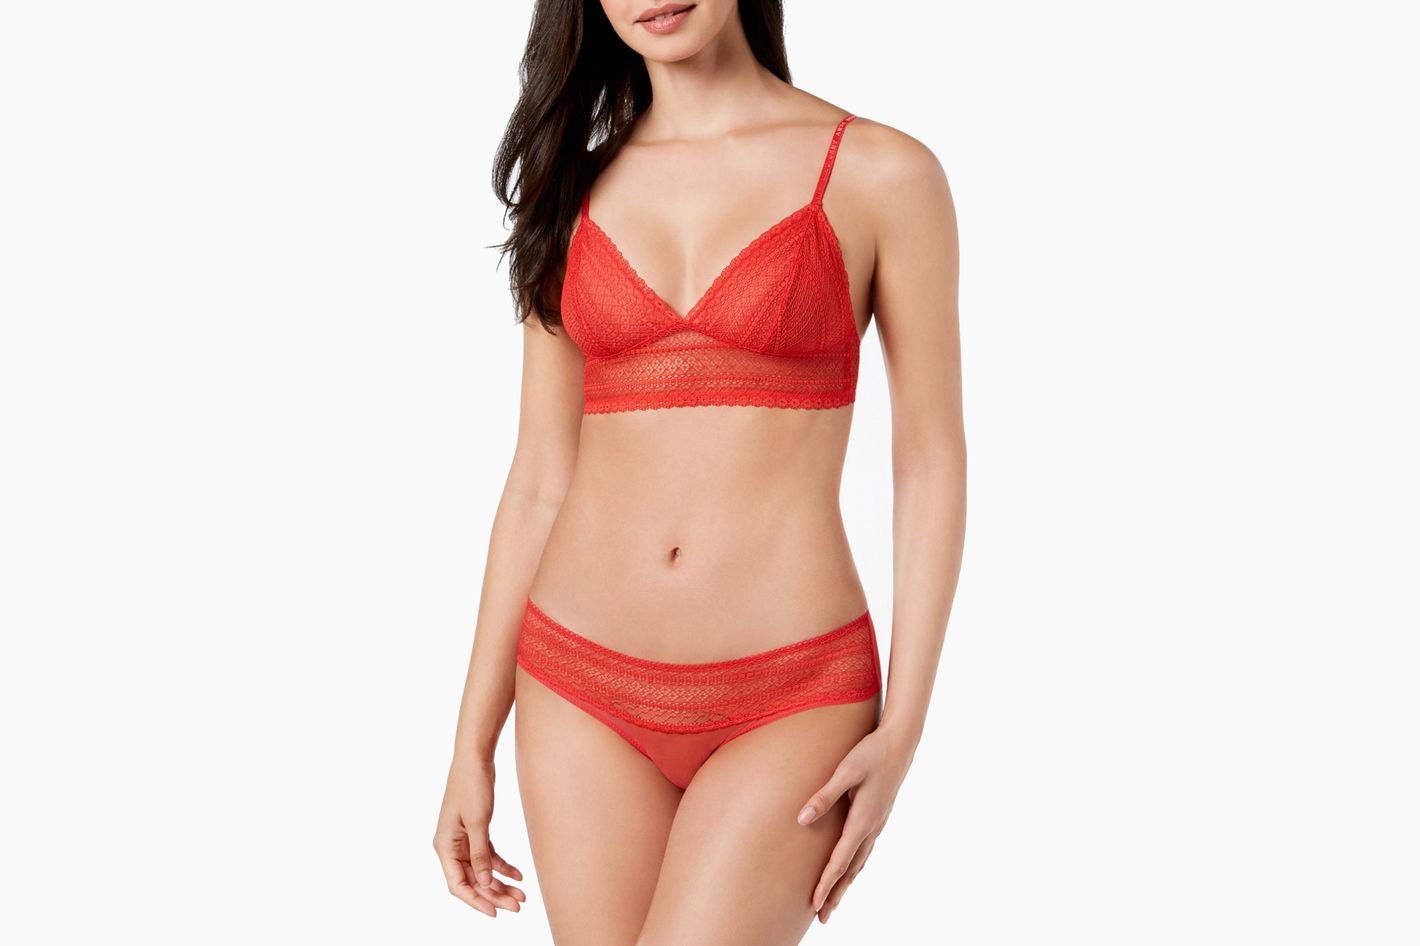 718c5ef1e The Best Cheap Lingerie That Looks Expensive